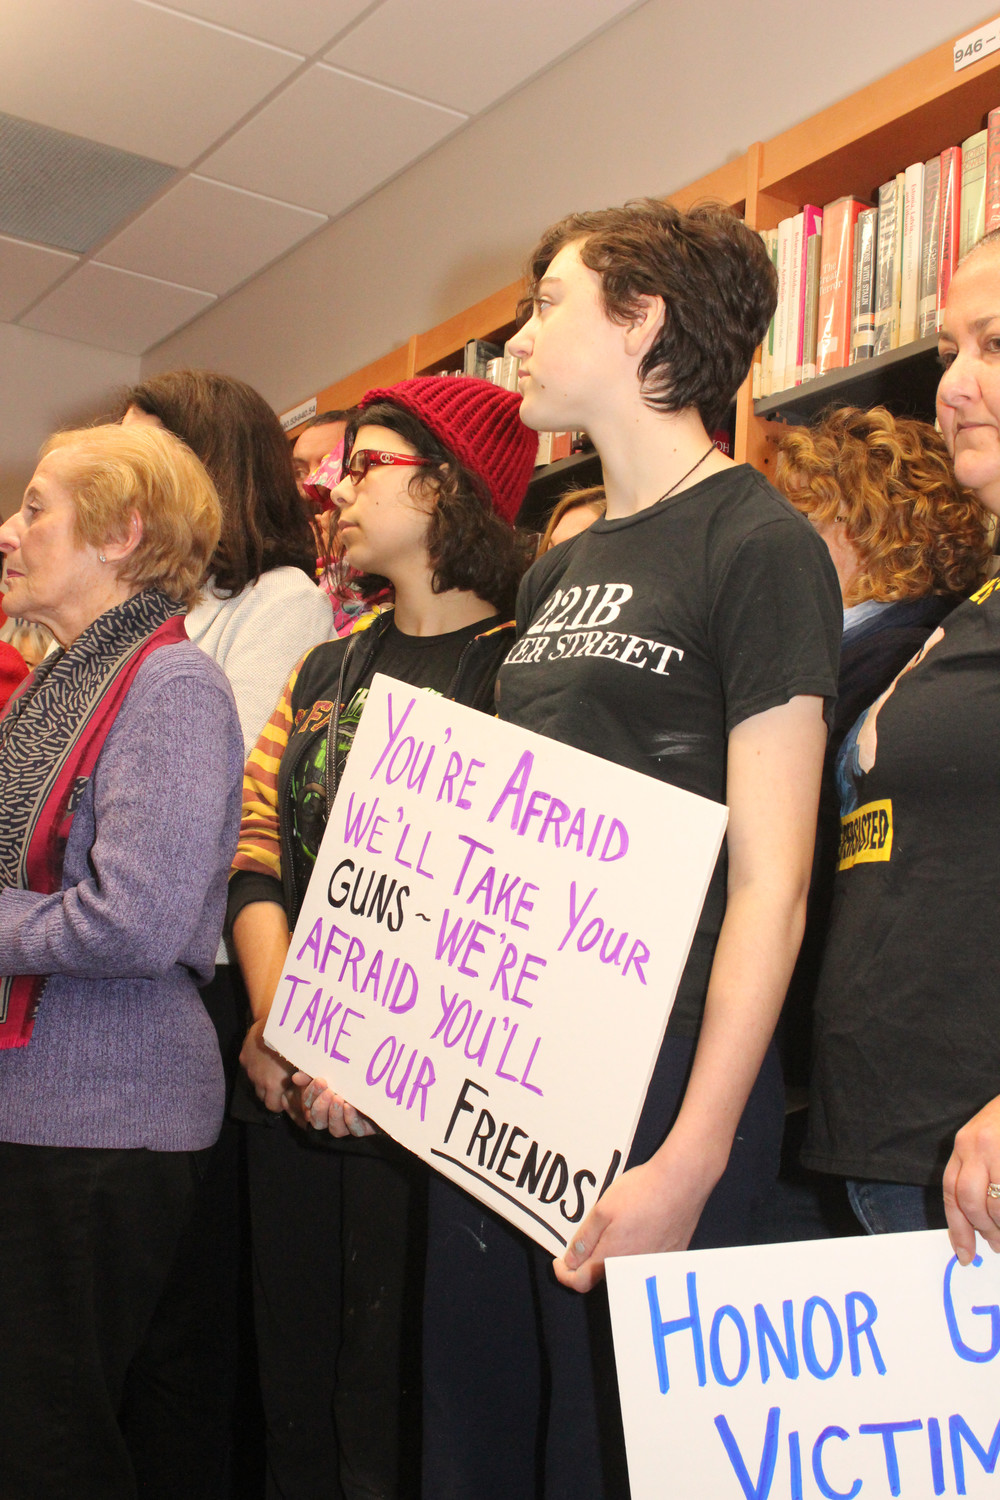 South Side High School student Katie Ralph displayed a placard at the news conference.